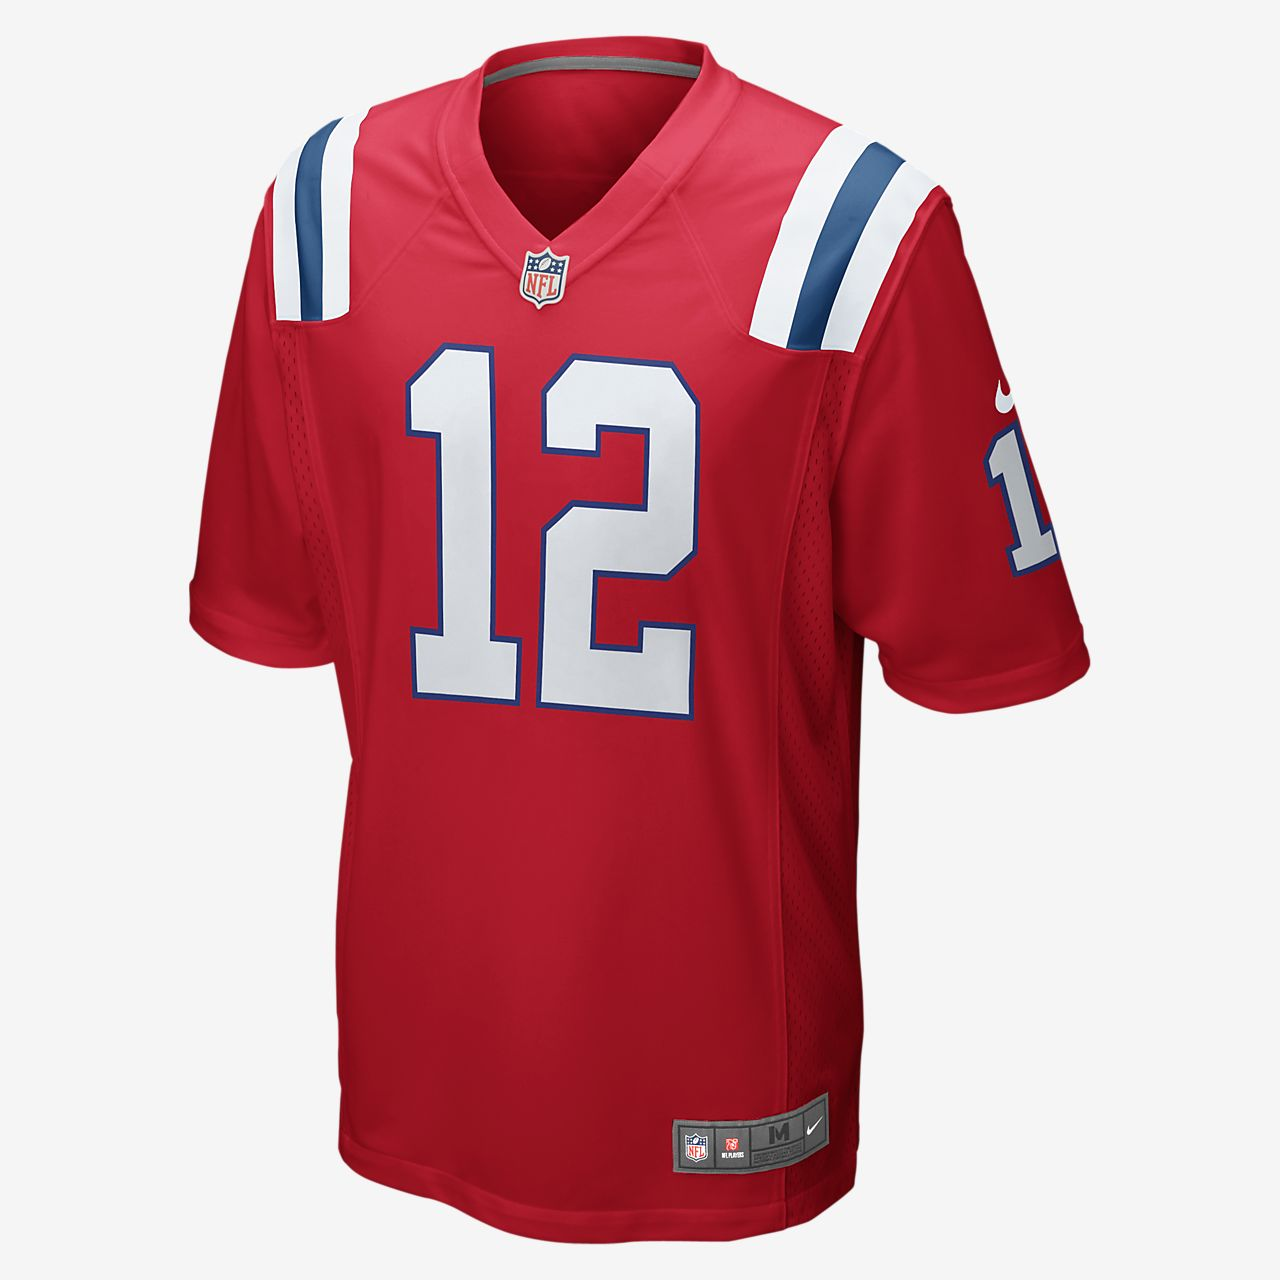 NFL New England Patriots (Tom Brady) Men's American Football Alternate Game Jersey